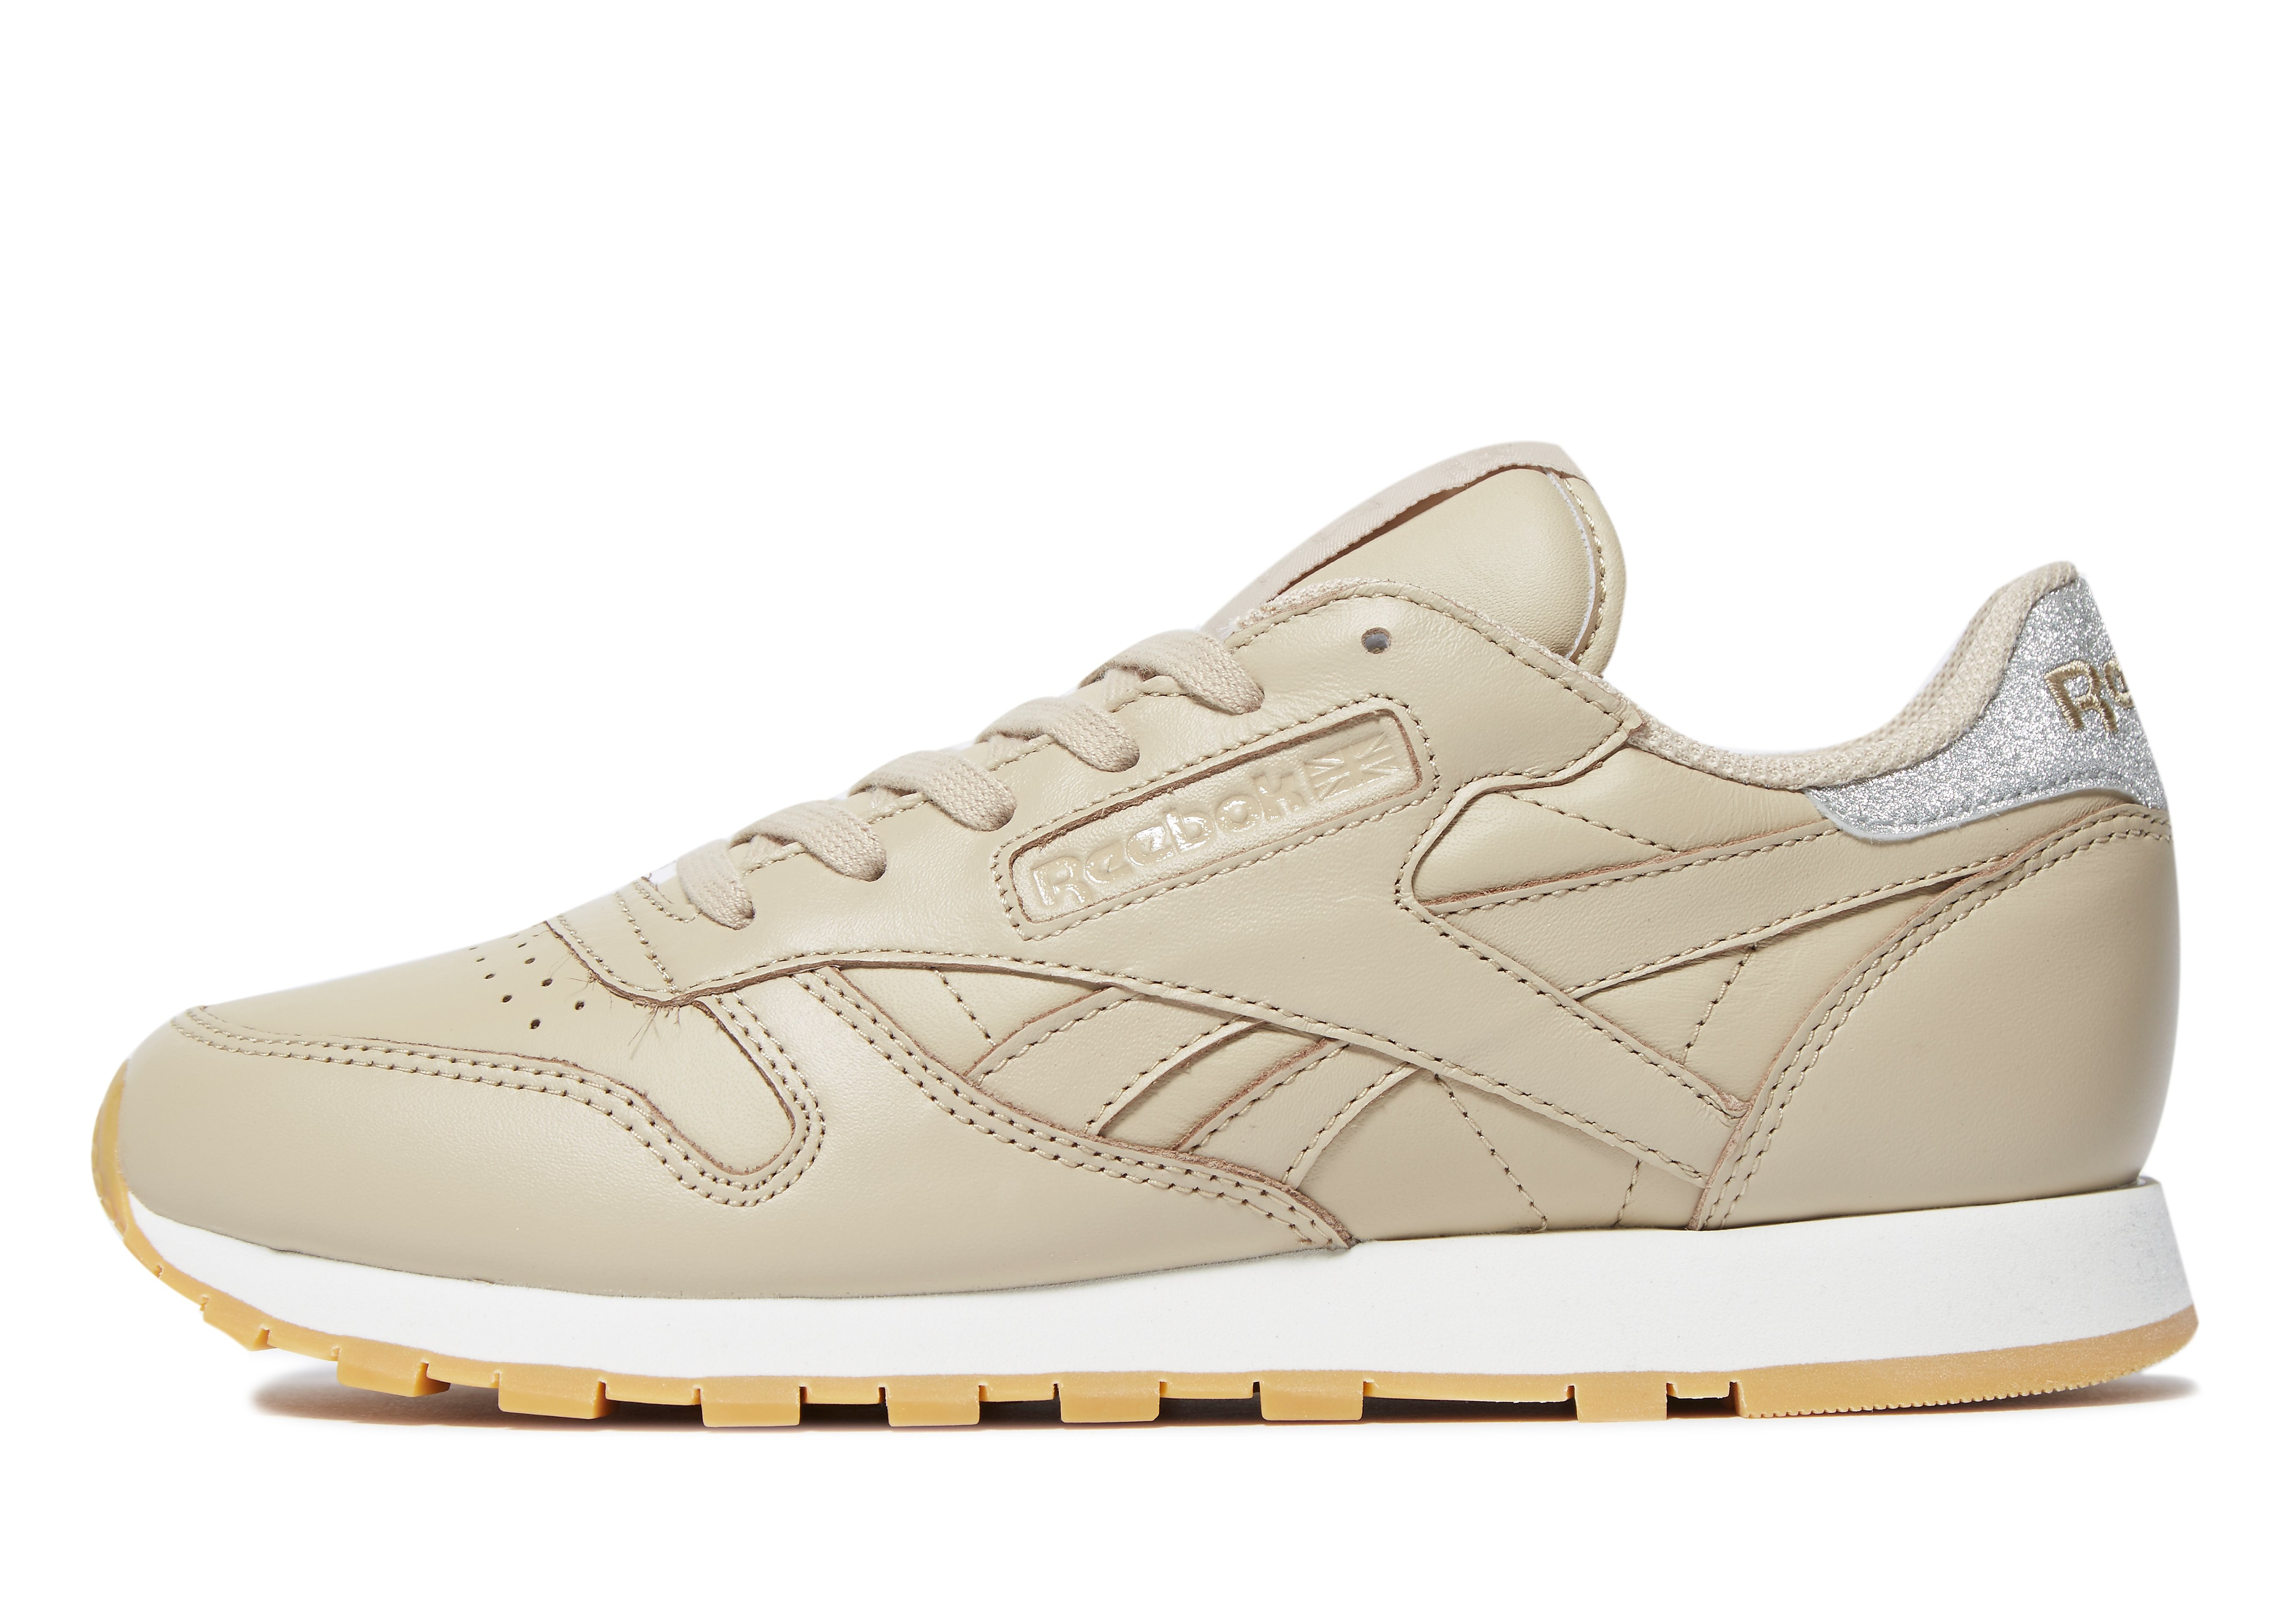 Reebok Classic Leather Glitter Women's